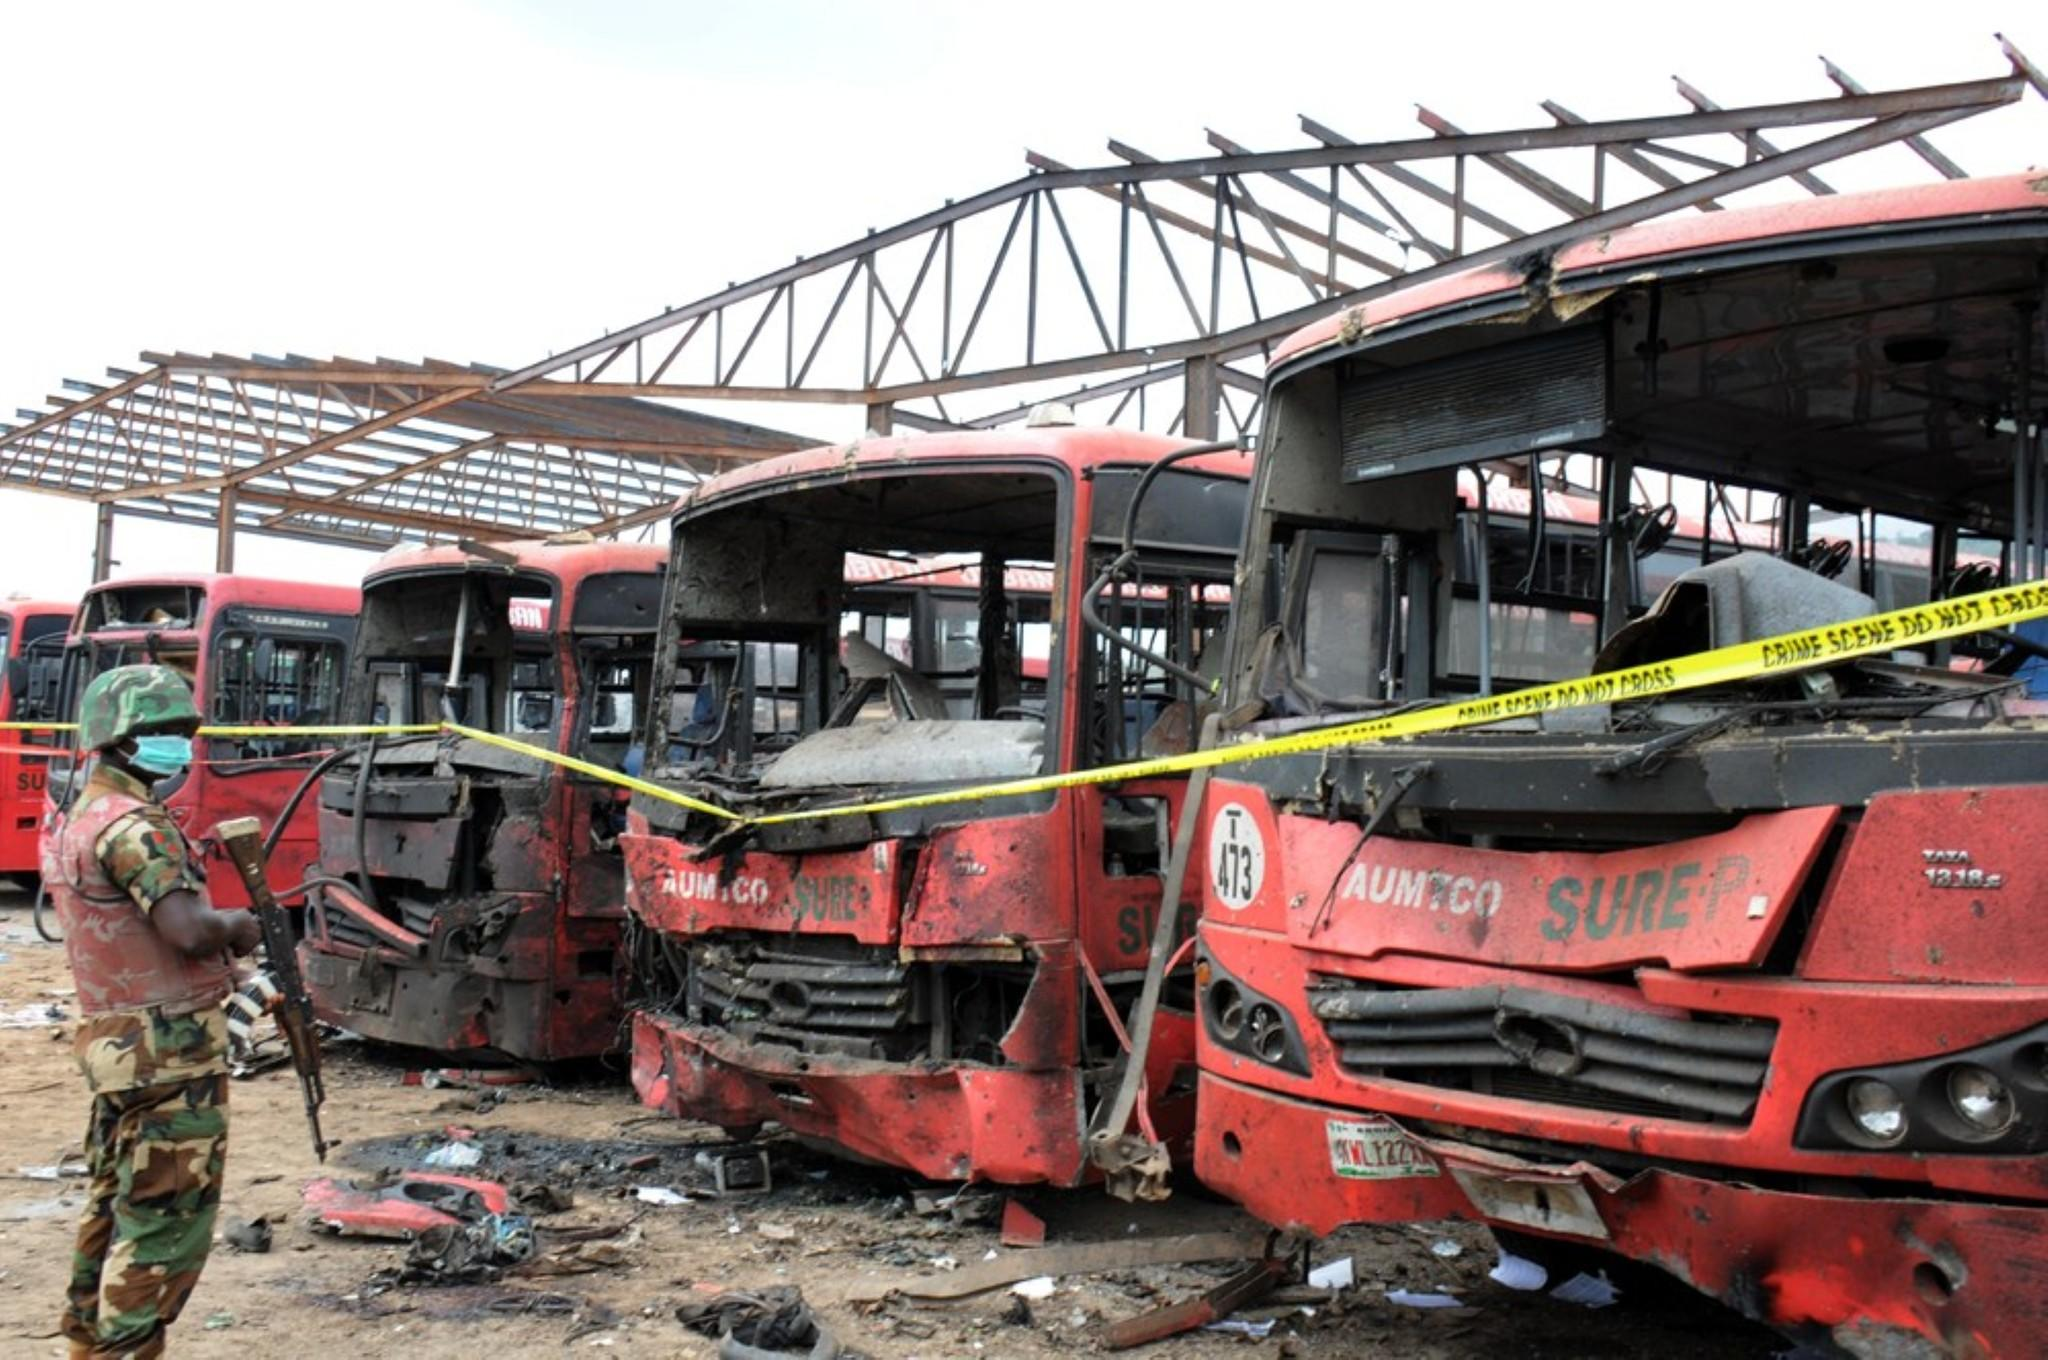 A soldier stands guard in front of burnt buses after an explosion outside the Nigerian capital, Abuja.